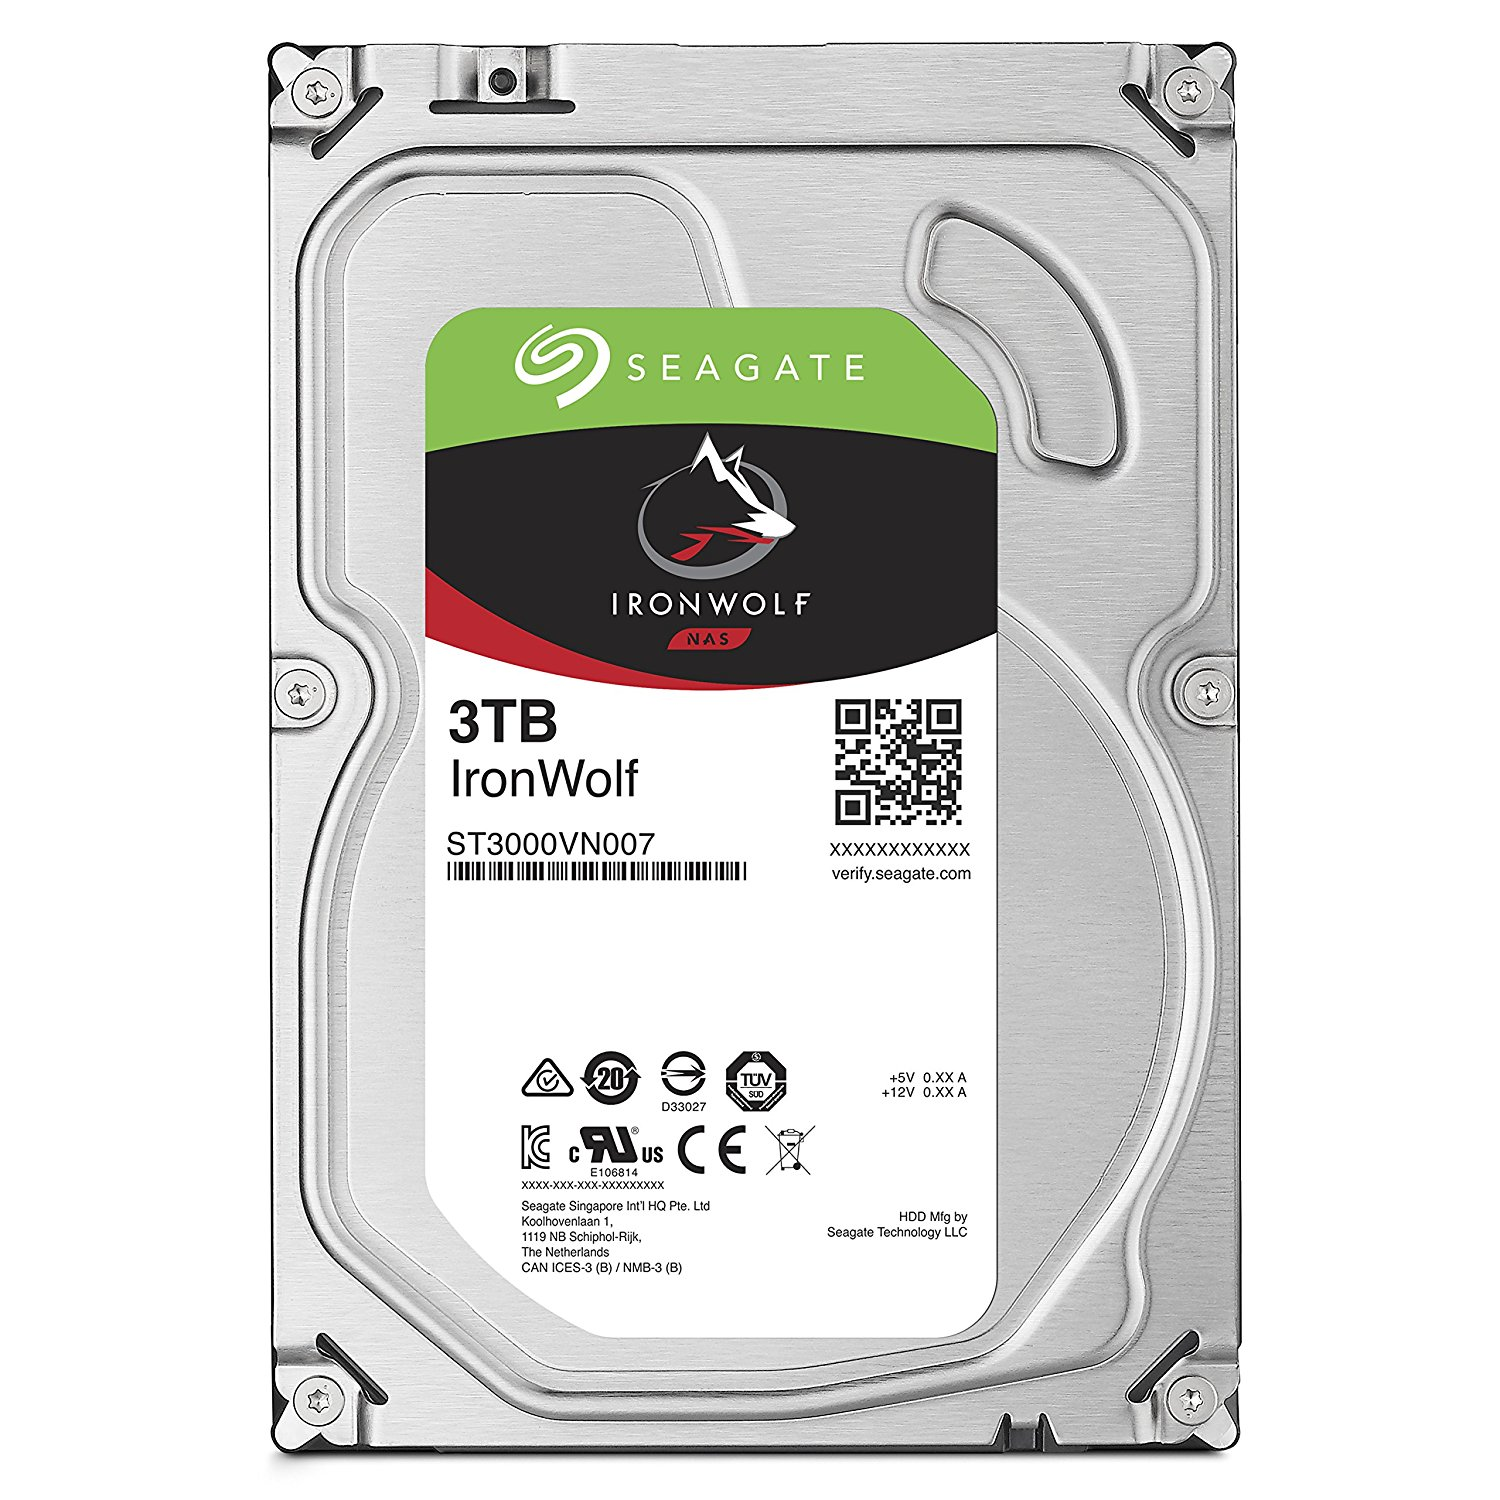 Seagate IronWolf Festplatte amazon